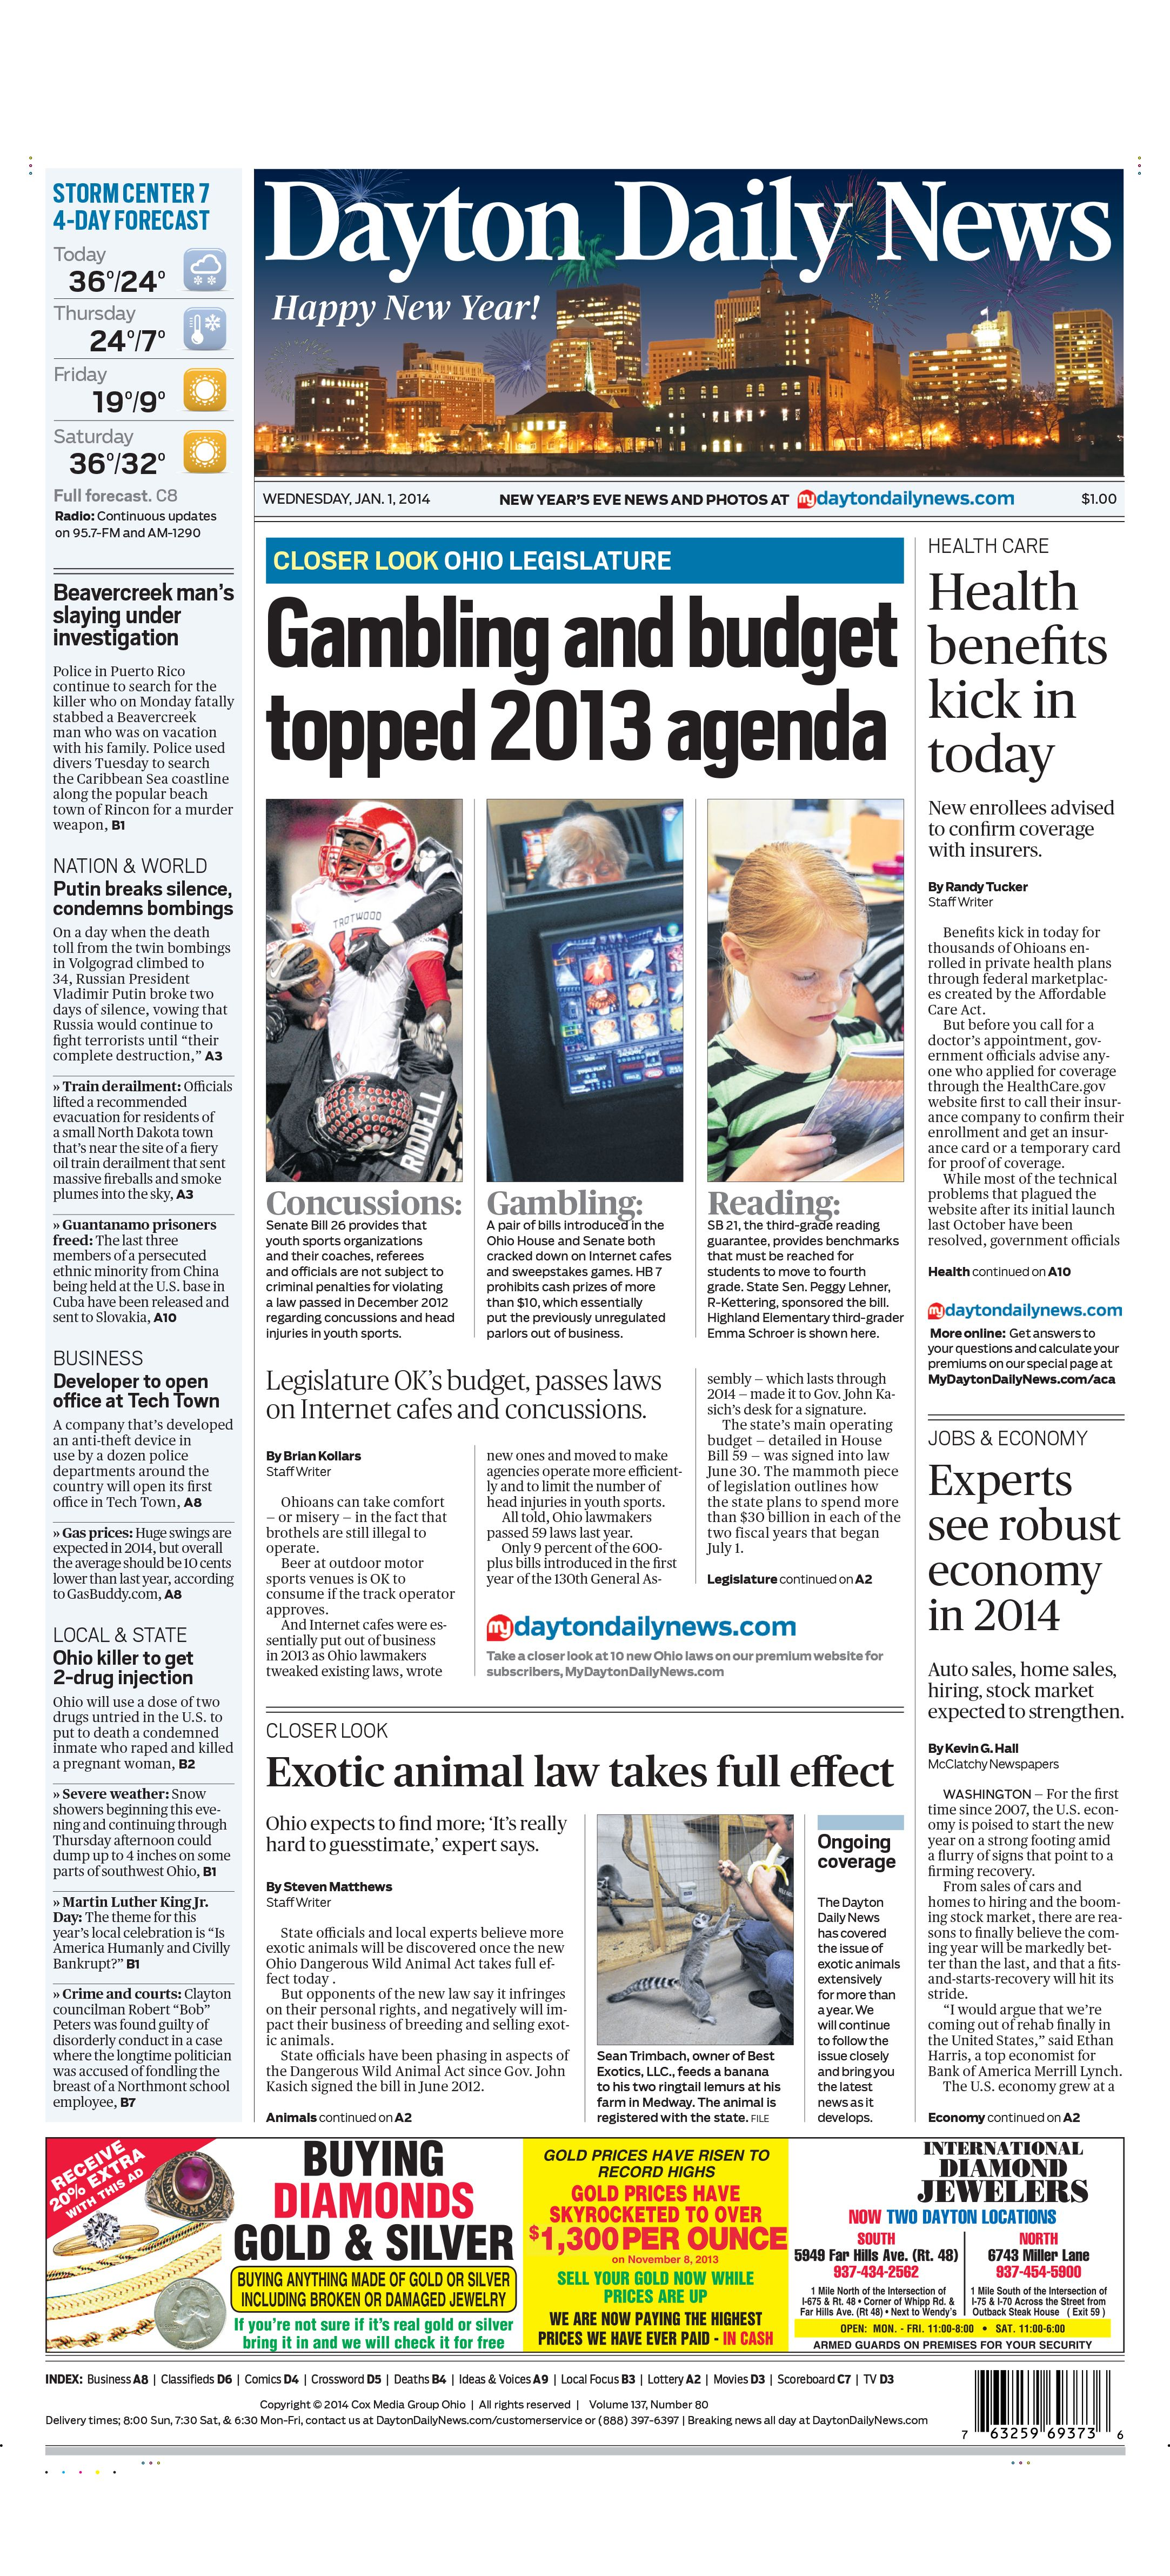 Dayton Daily News Front Page For January 1 2014 News Design Nyd Dayton Journal News Daily News